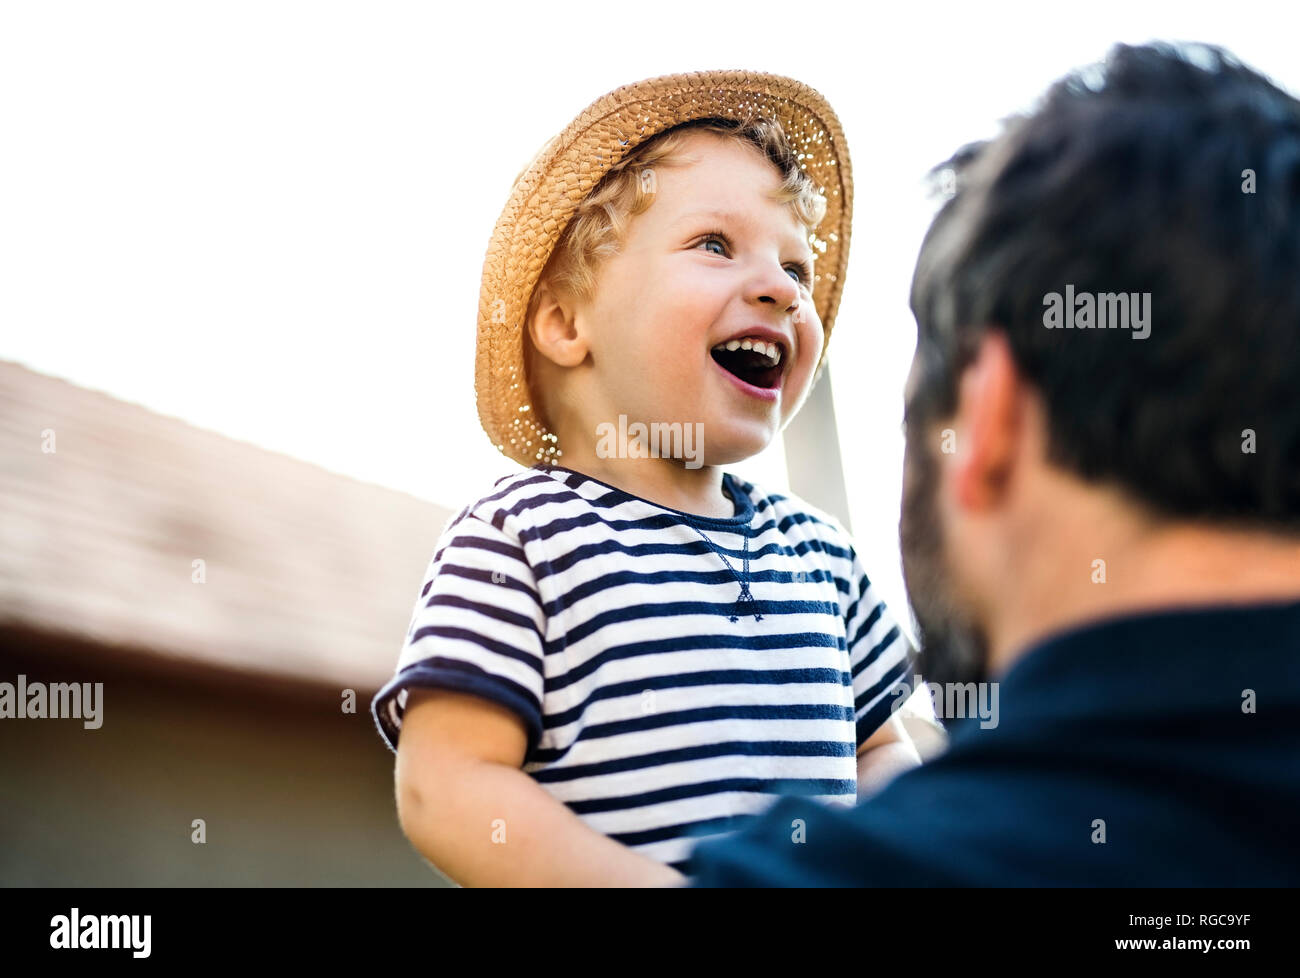 Portrait of laughing toddler on his father's arms - Stock Image